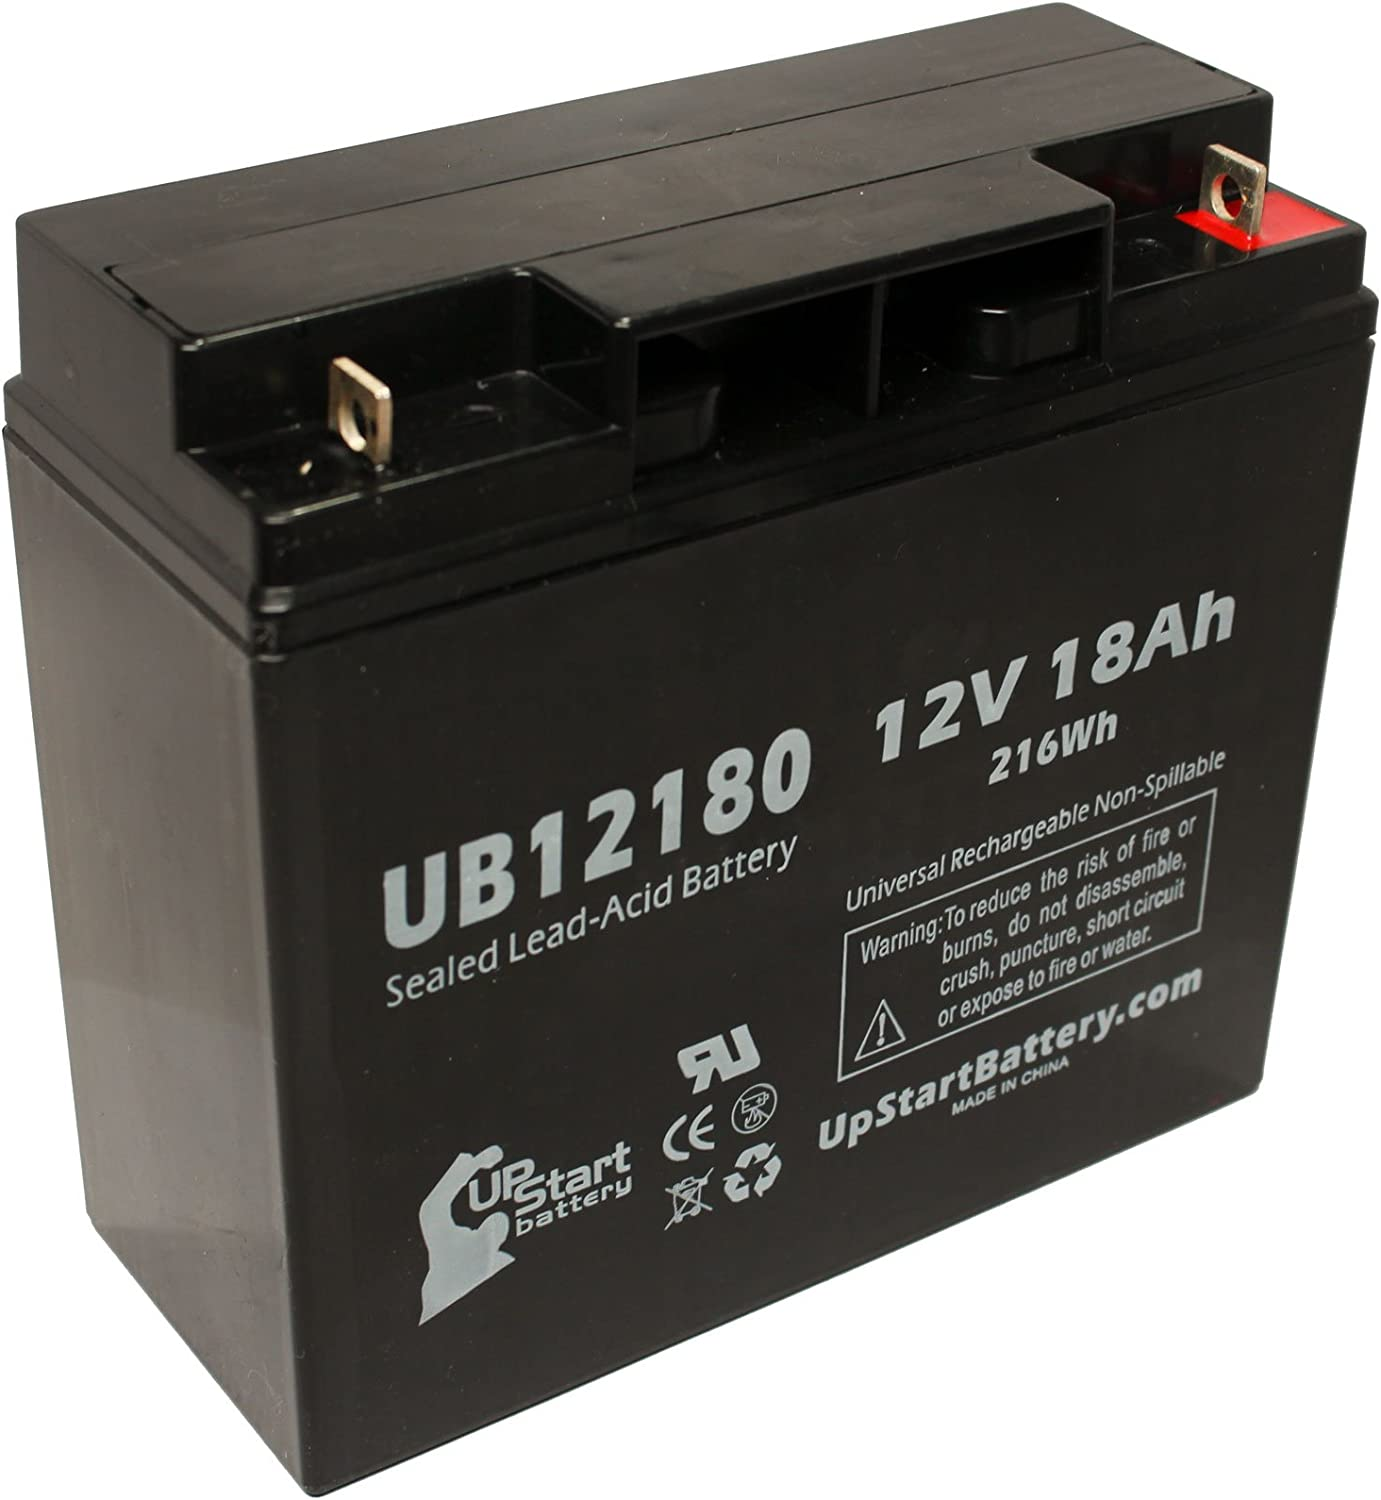 12V, 18Ah, 18000mAh, T4 Terminal, AGM, SLA Replacement for GS PORTALAC PX12170 Battery Replacement UB12180 Universal Sealed Lead Acid Battery